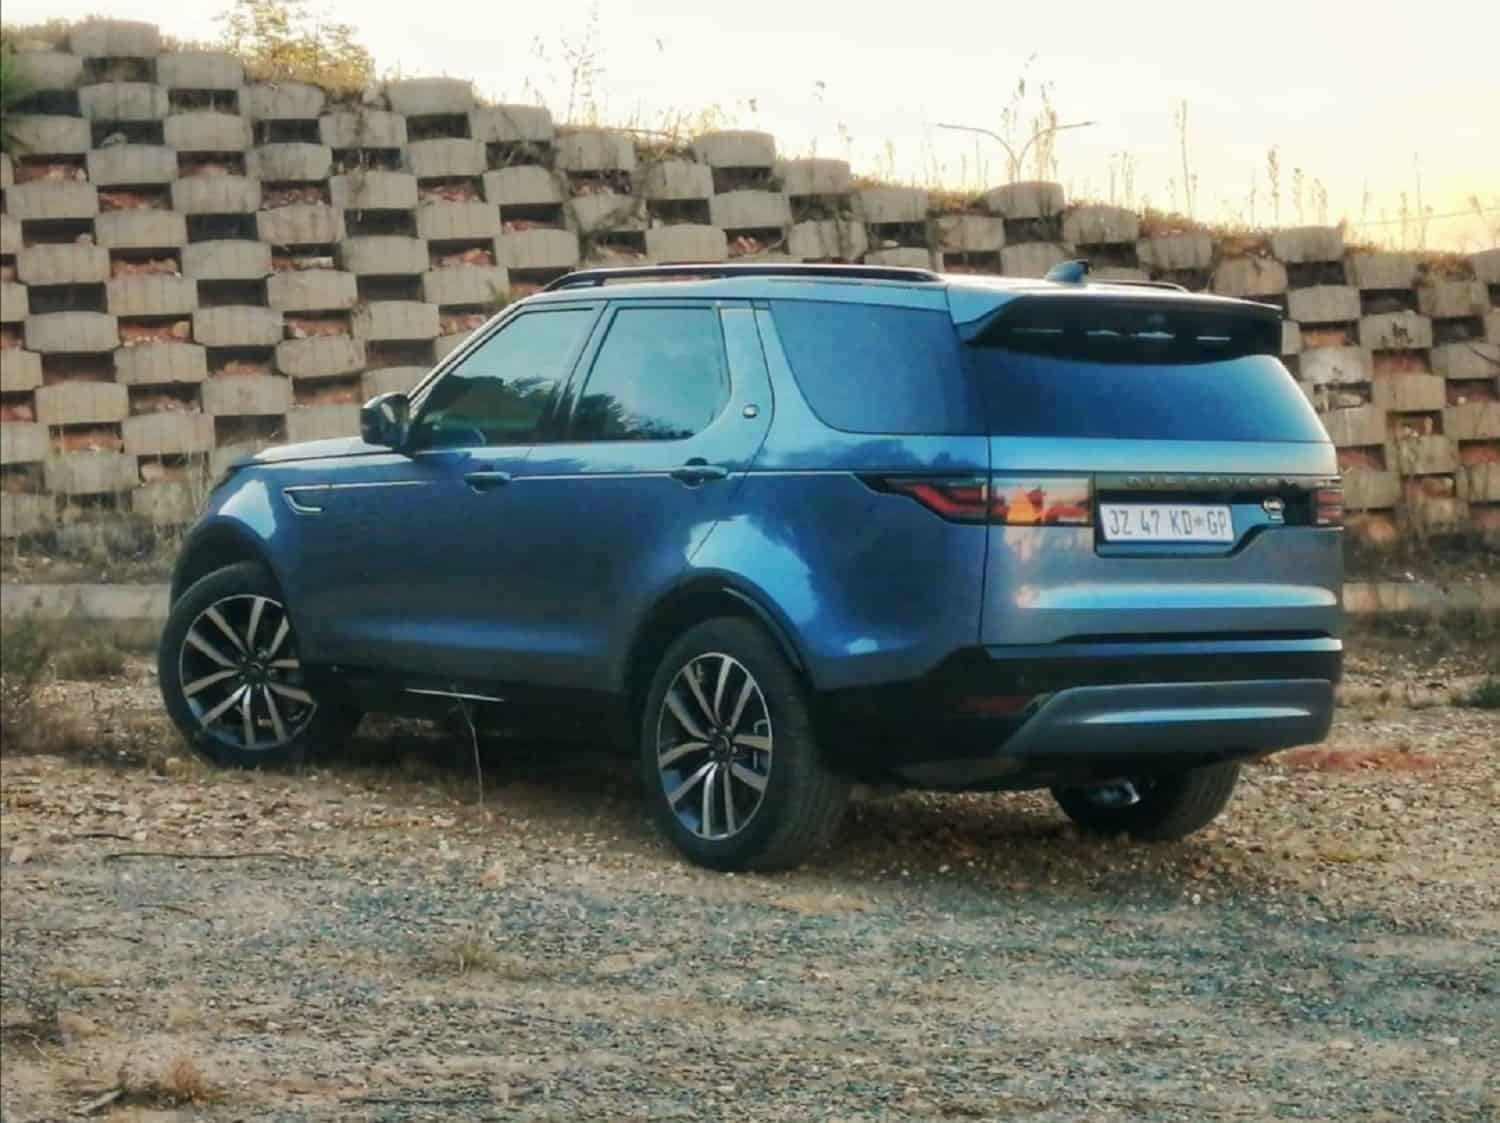 Land Rover Discovery road test